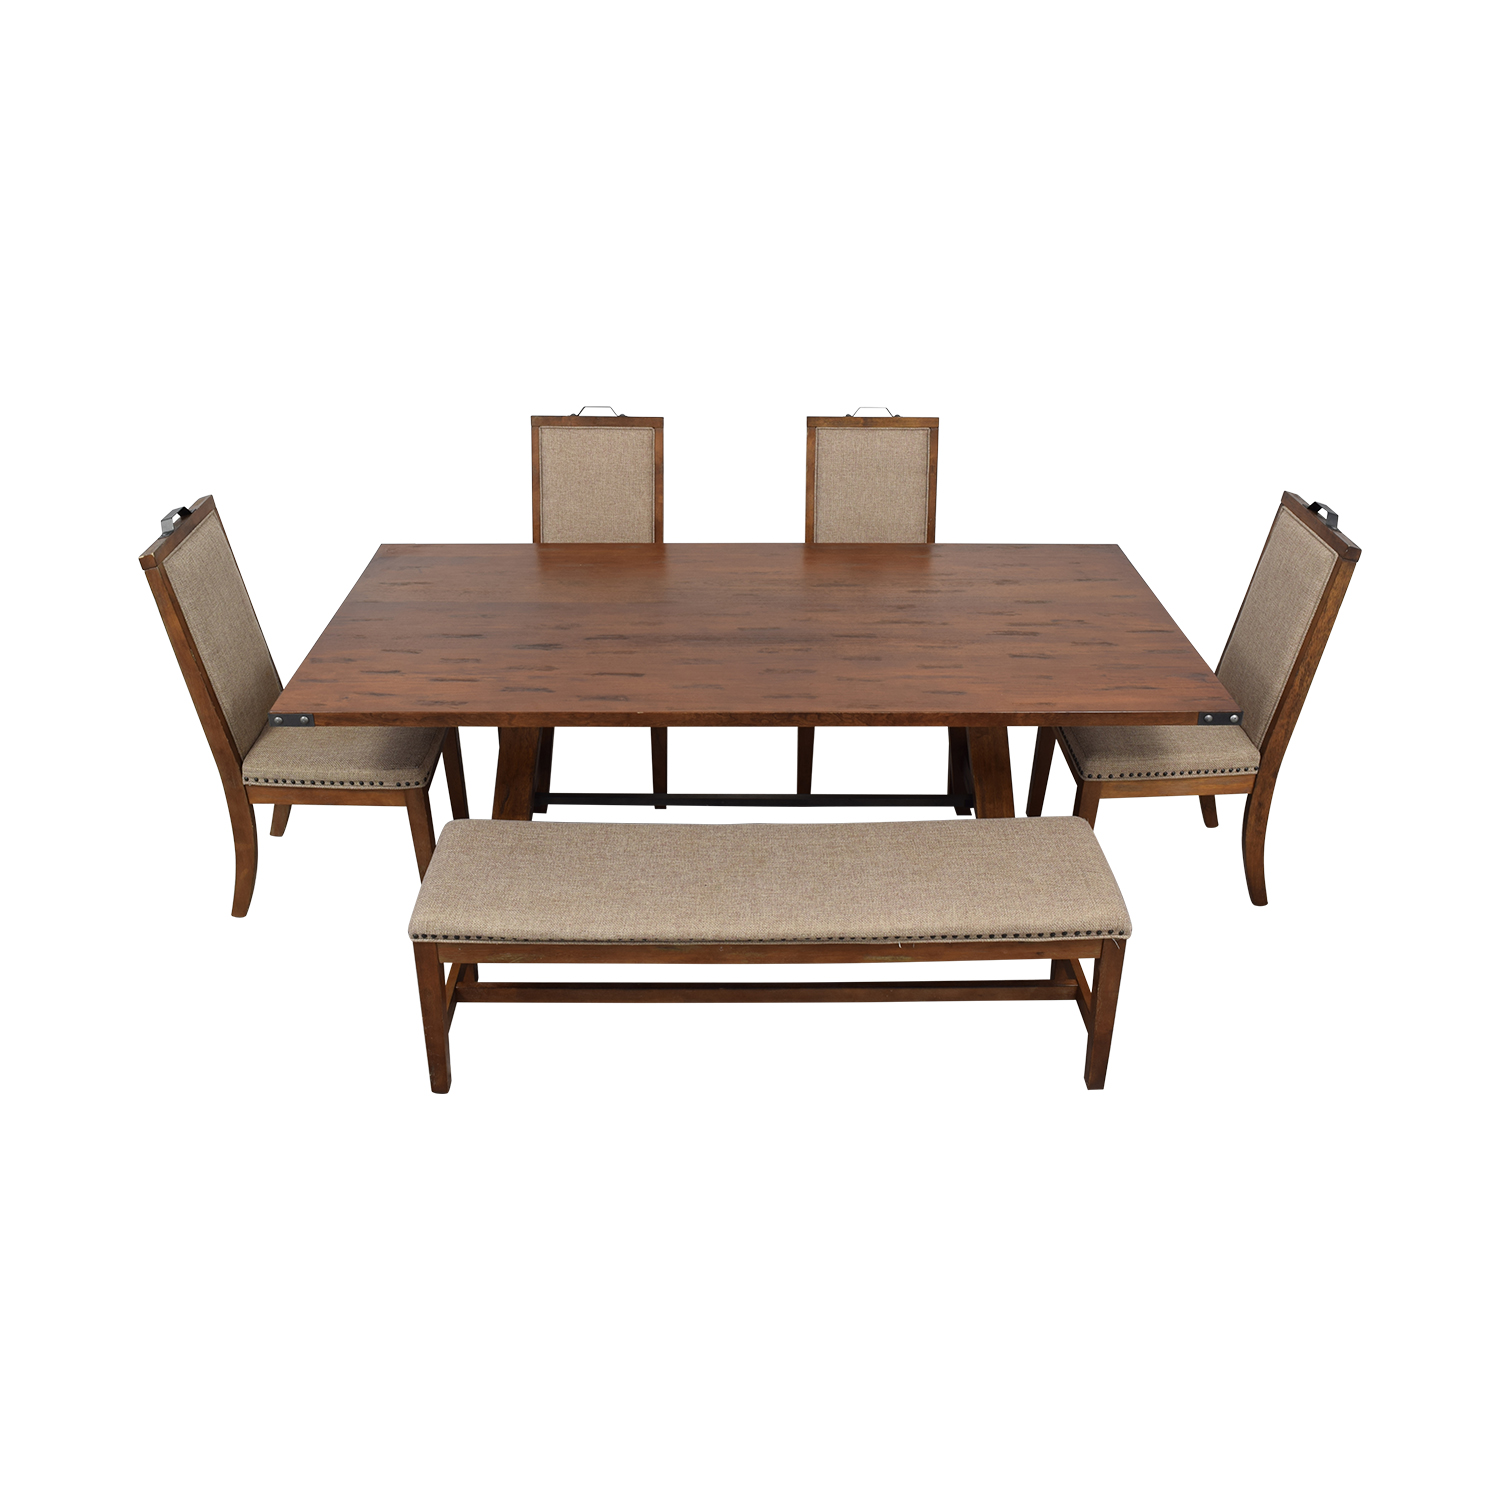 Coaster Fine Furniture Coaster Fine Furniture Wood Dining Set with Upholstered Bench and Chairs Dining Sets